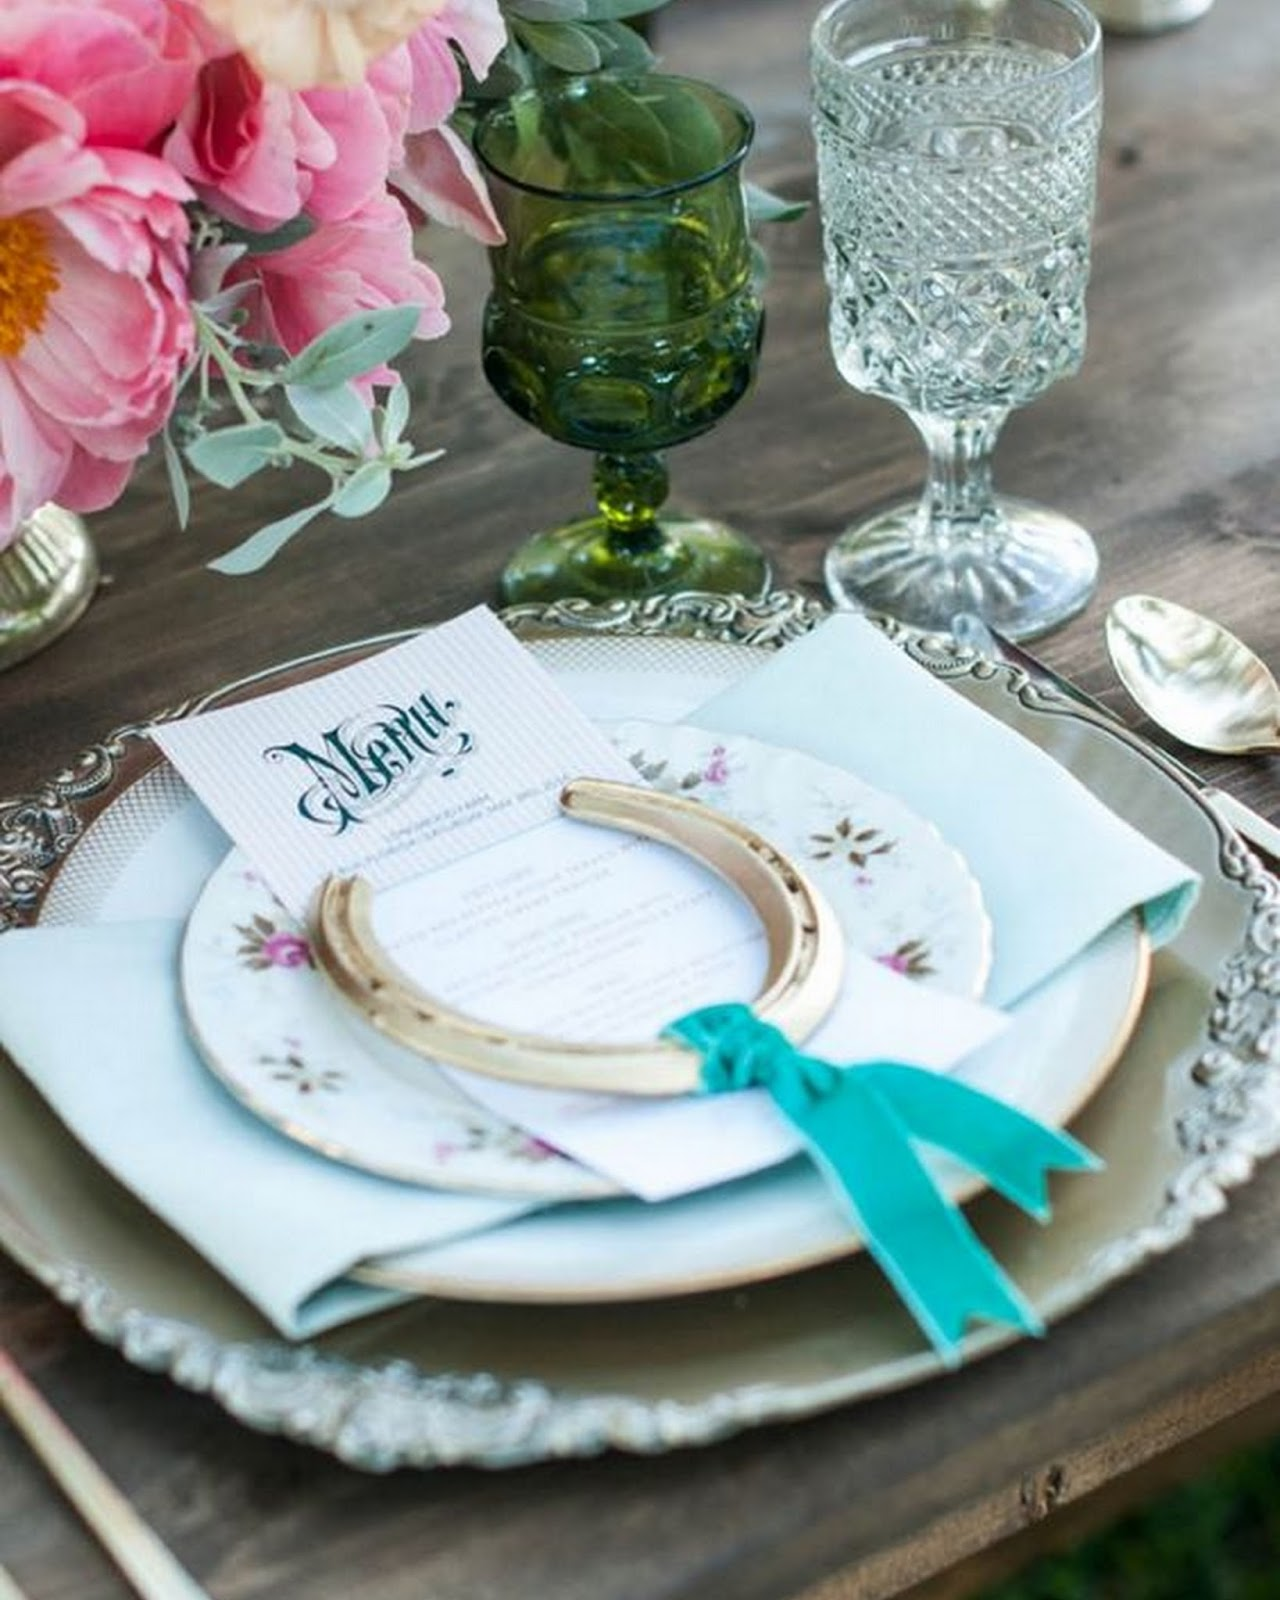 Irish Wedding Gifts Traditions: Postcards And Pretties: PRETTY DETAILS